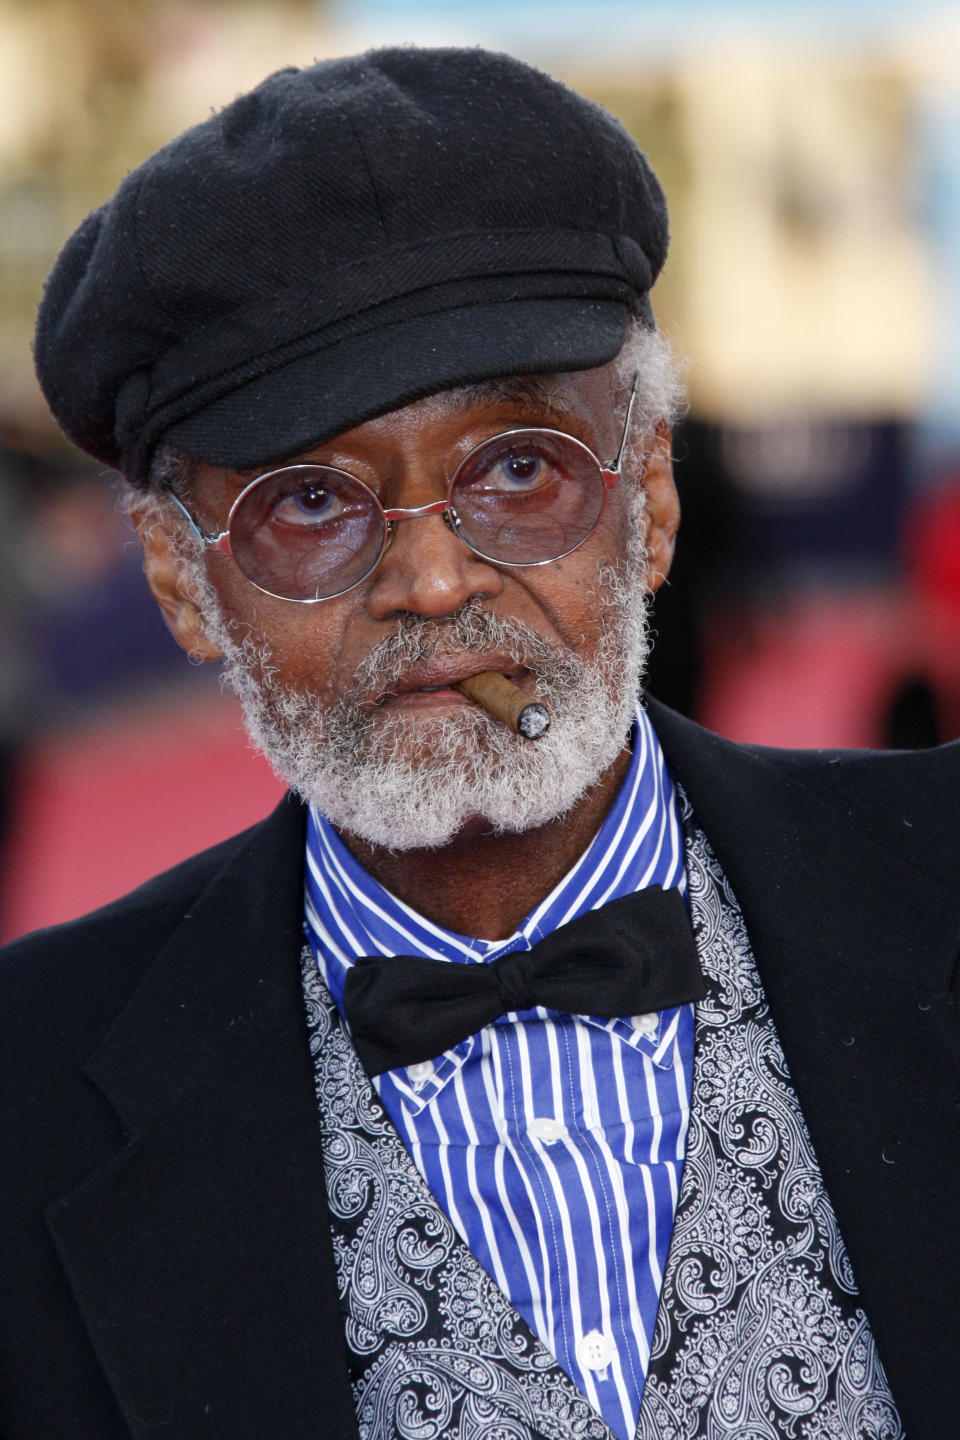 """FILE - U.S director, actor, screenwriter Melvin Van Peebles is seen during a tribute for his career at the 38th American Film Festival in Deauville, Normandy, France, Wednesday Sept. 5, 2012. Van Peebles, a Broadway playwright, musician and movie director whose work ushered in the """"blaxploitation"""" films of the 1970s, has died at age 89. His family said in a statement that Van Peebles died Tuesday night, Sept. 21, 2021, at his home. (AP Photo/Michel Spingler, File)"""